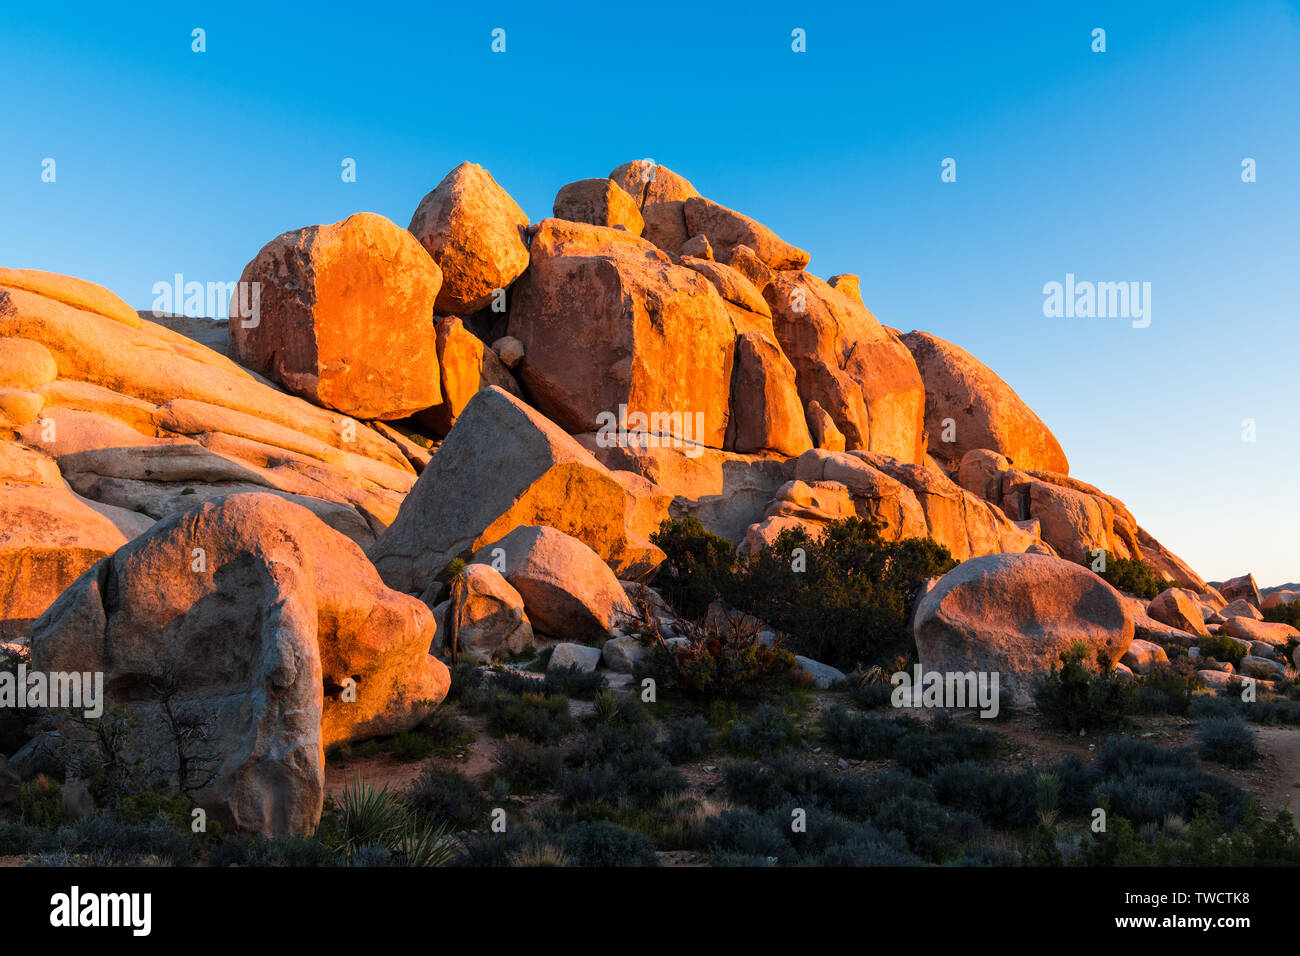 Rock formation of huge sandstone boulders glowing in the golden light of sunset - Joshua Tree National Park, California - Stock Image